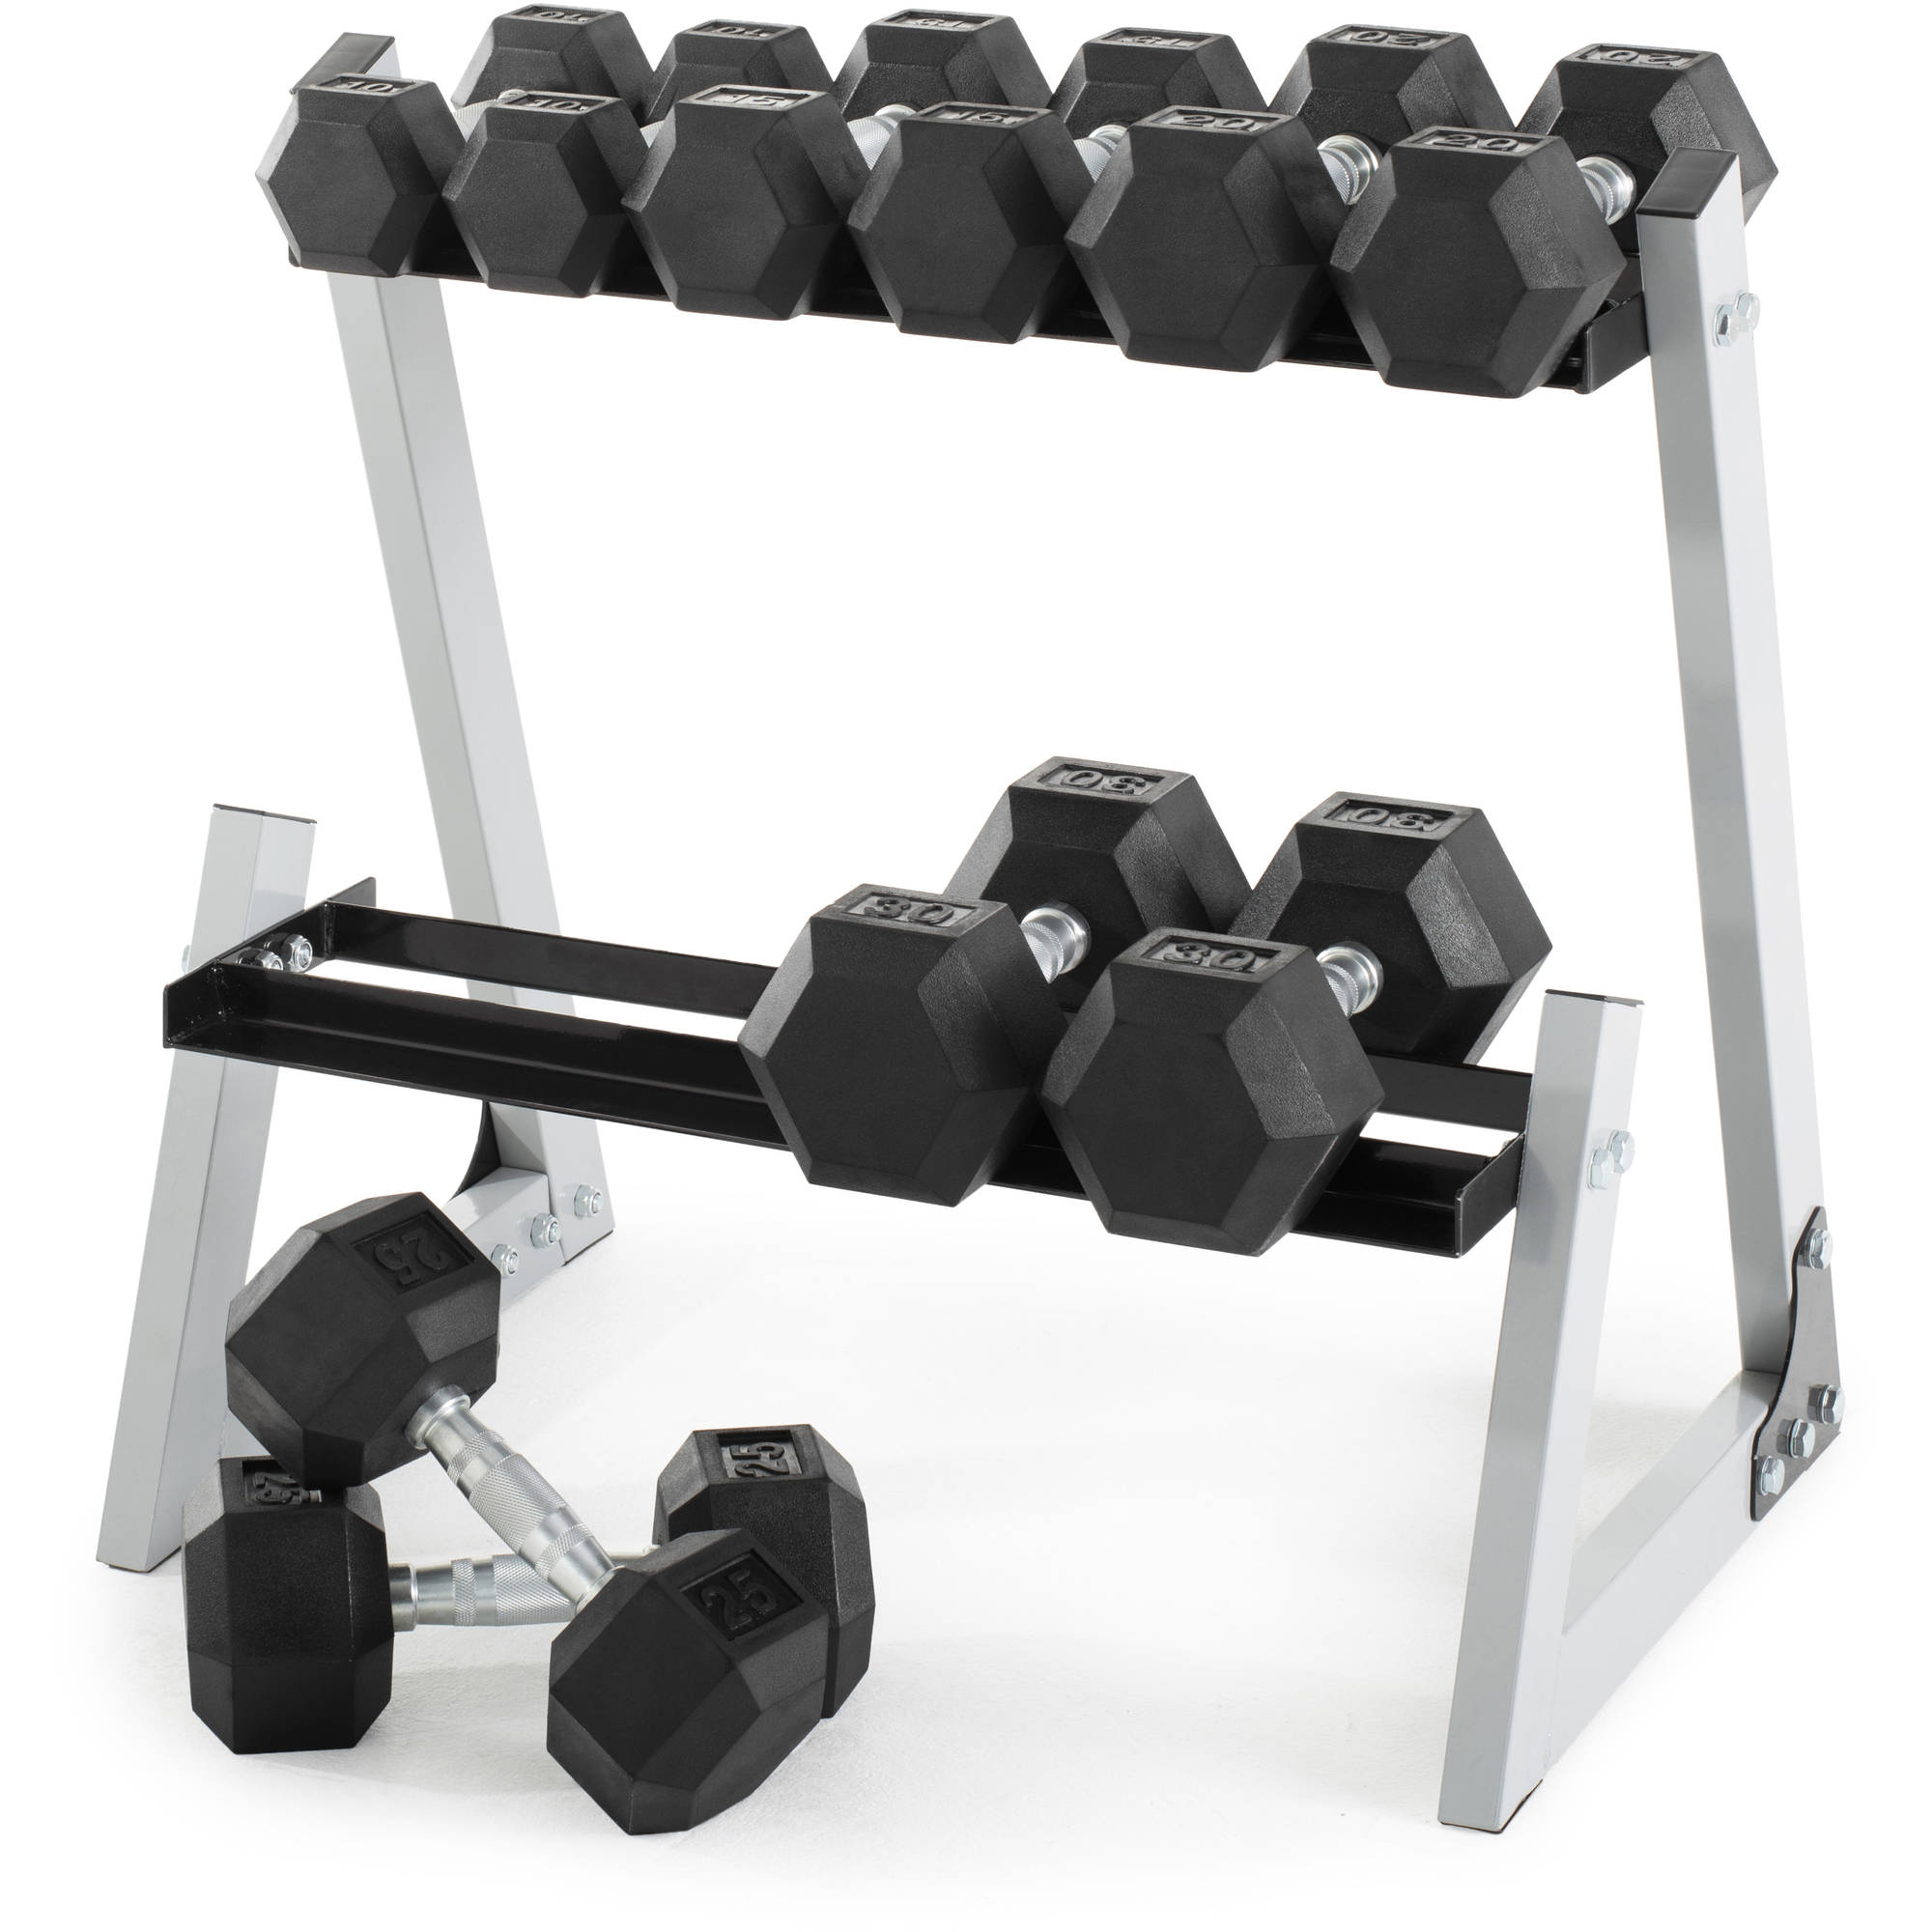 Weider 200 lb Rubber Hex Dumbbell Weight Set, 10-30 lb with Rack Box